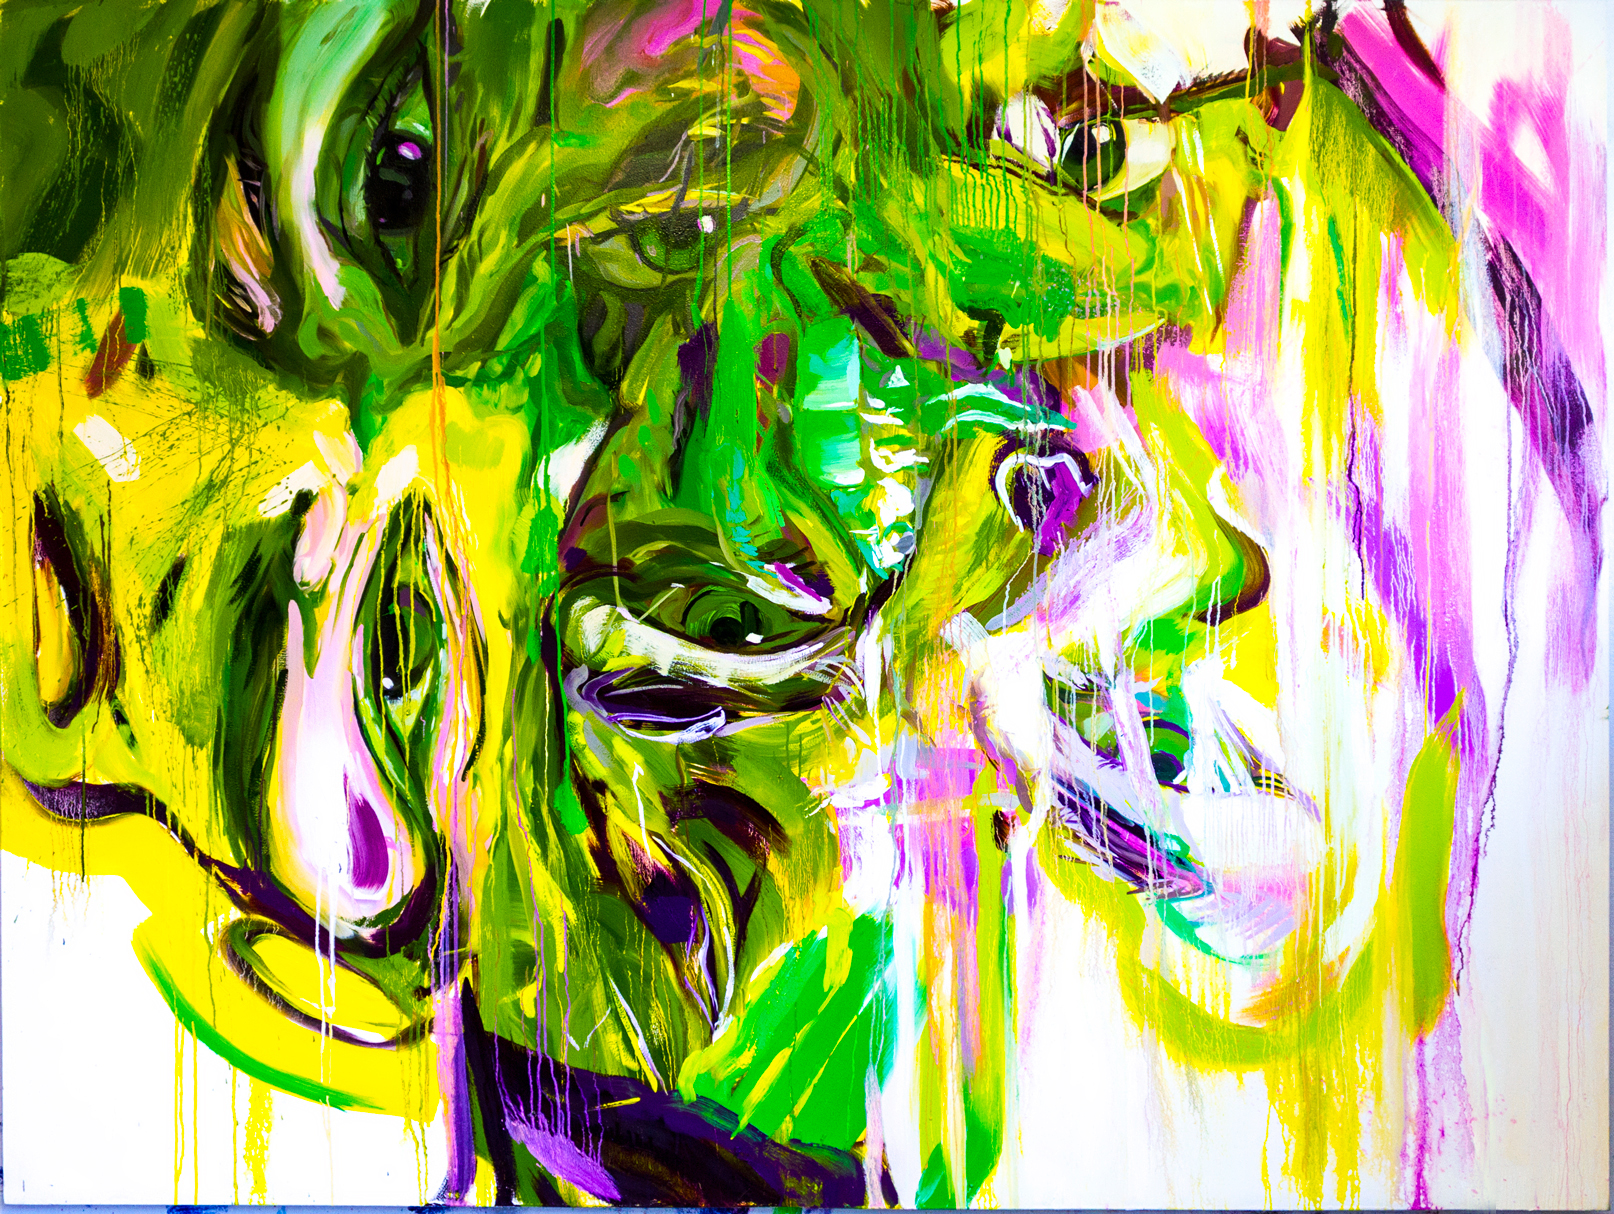 The Big Green One, oil on canvas, 2016